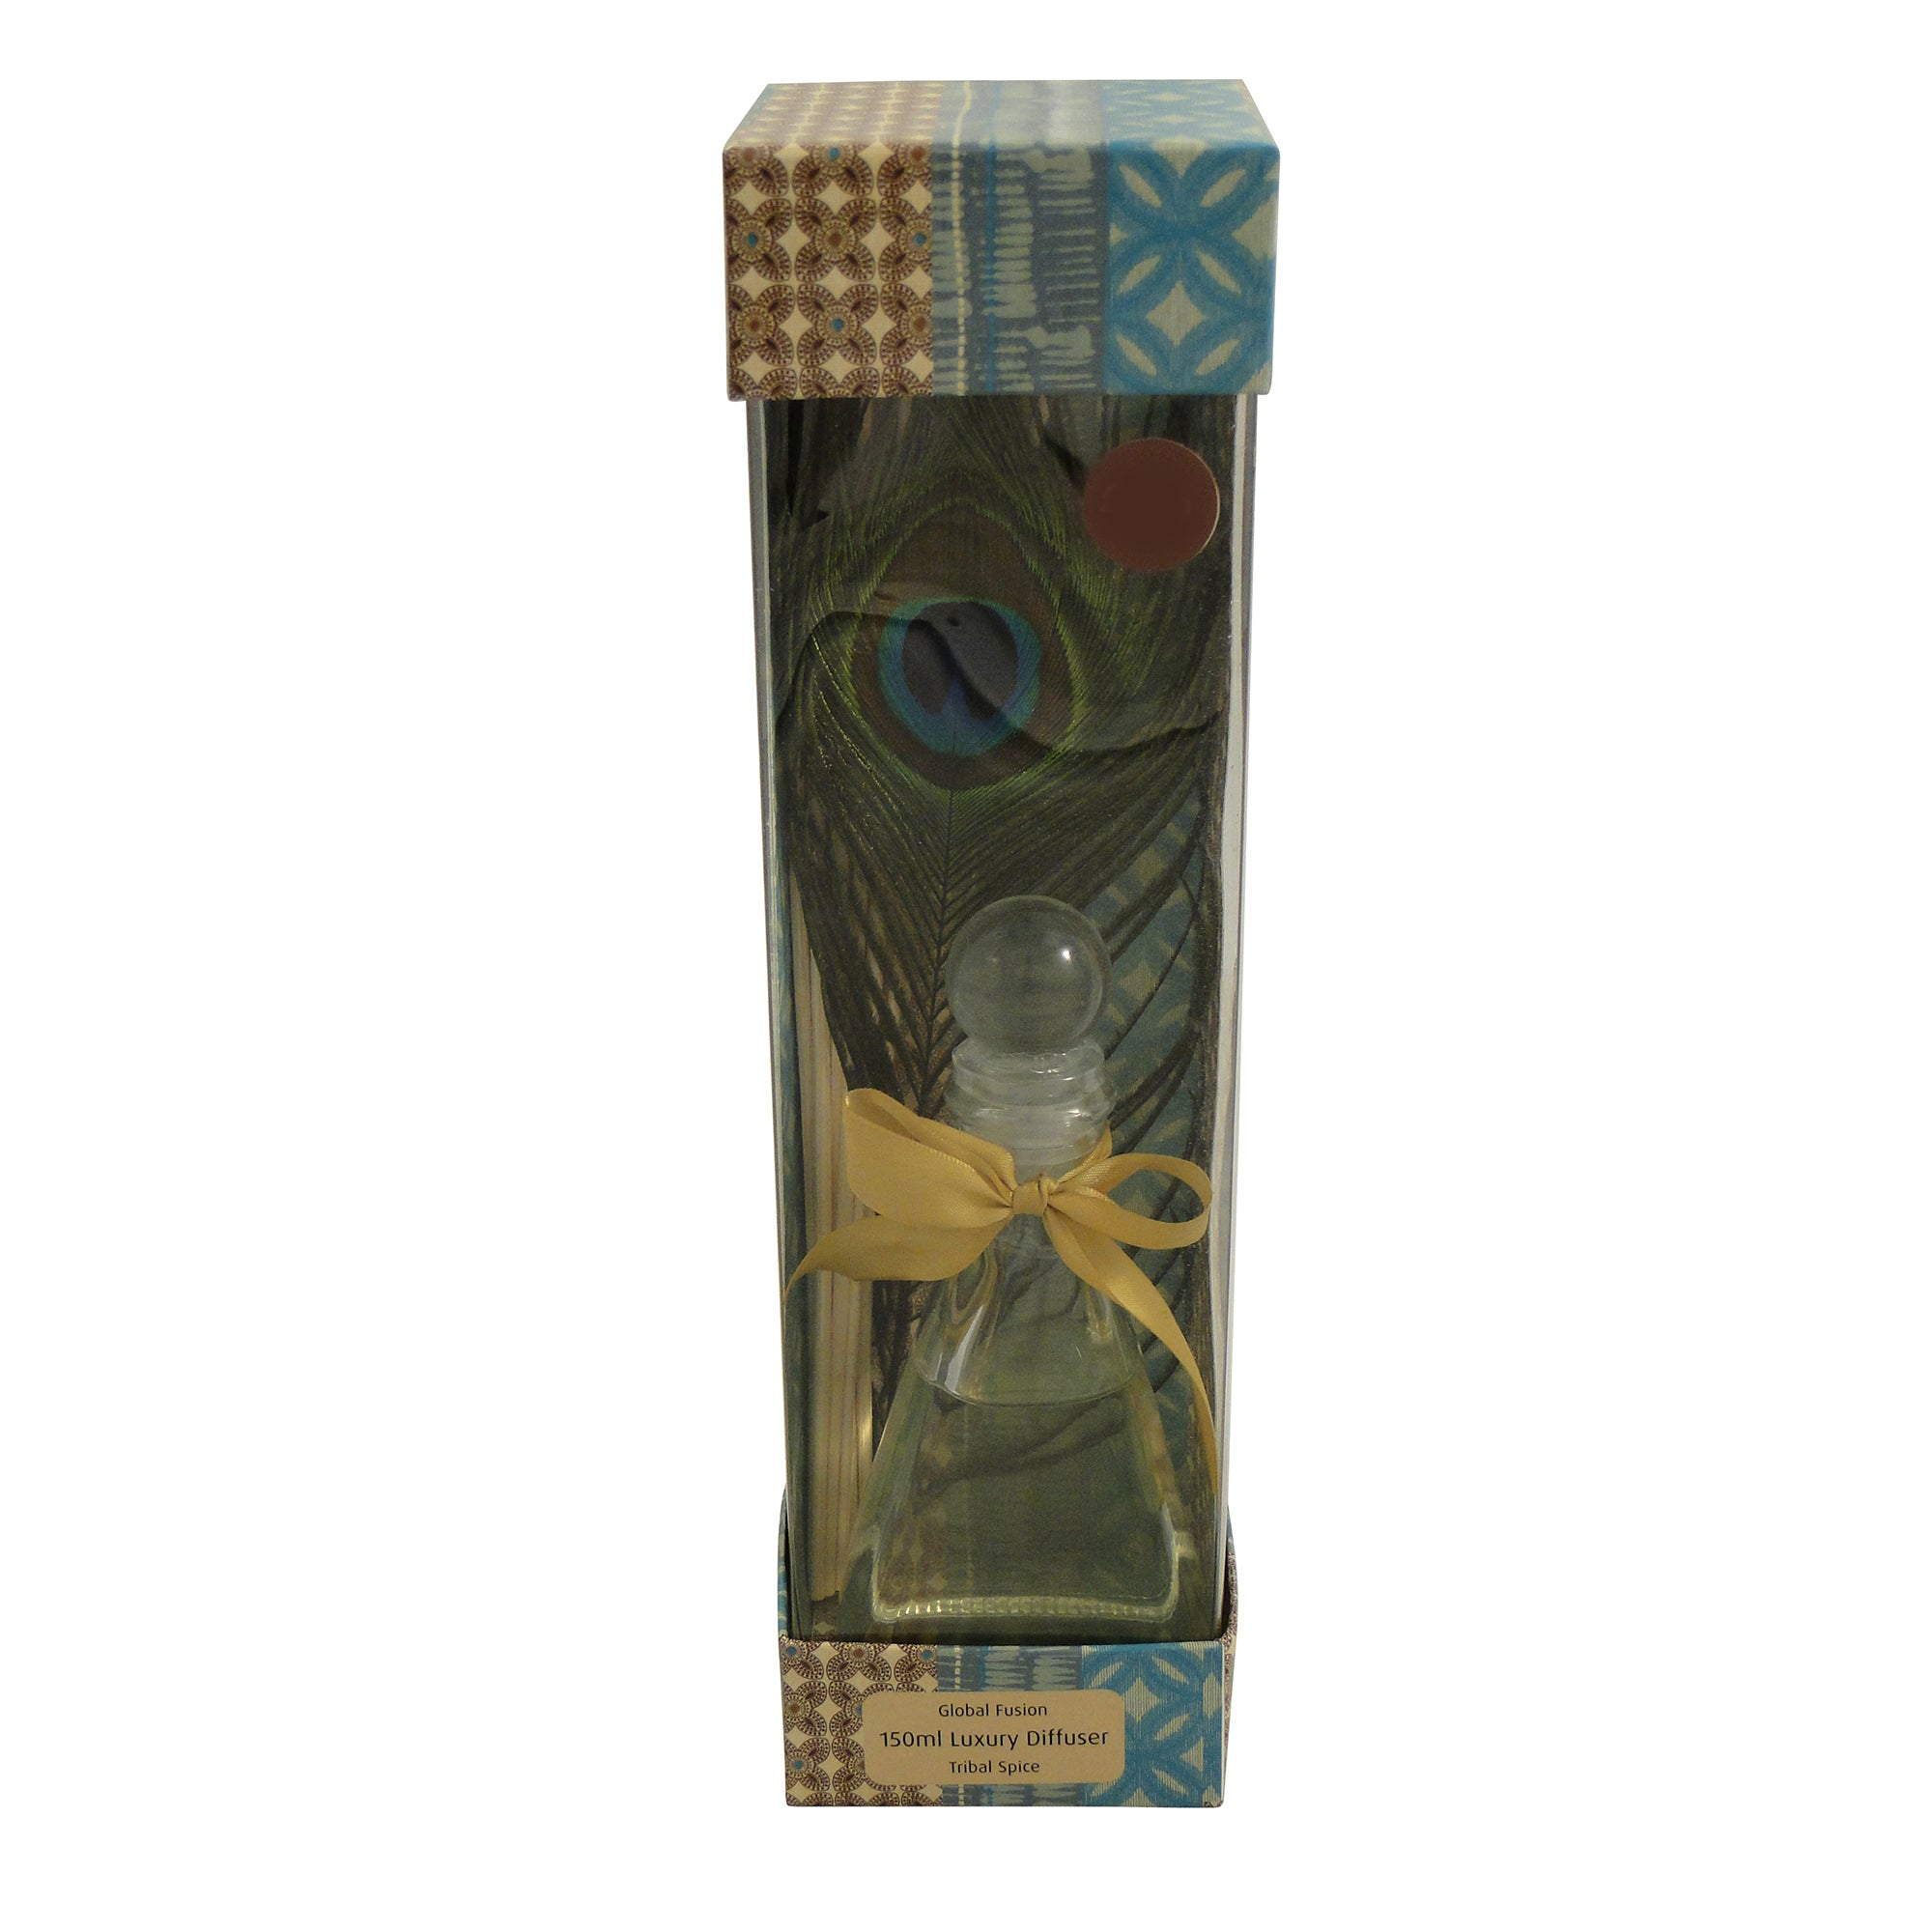 Global Fusion Tribal Spice 150ml Reed Diffuser